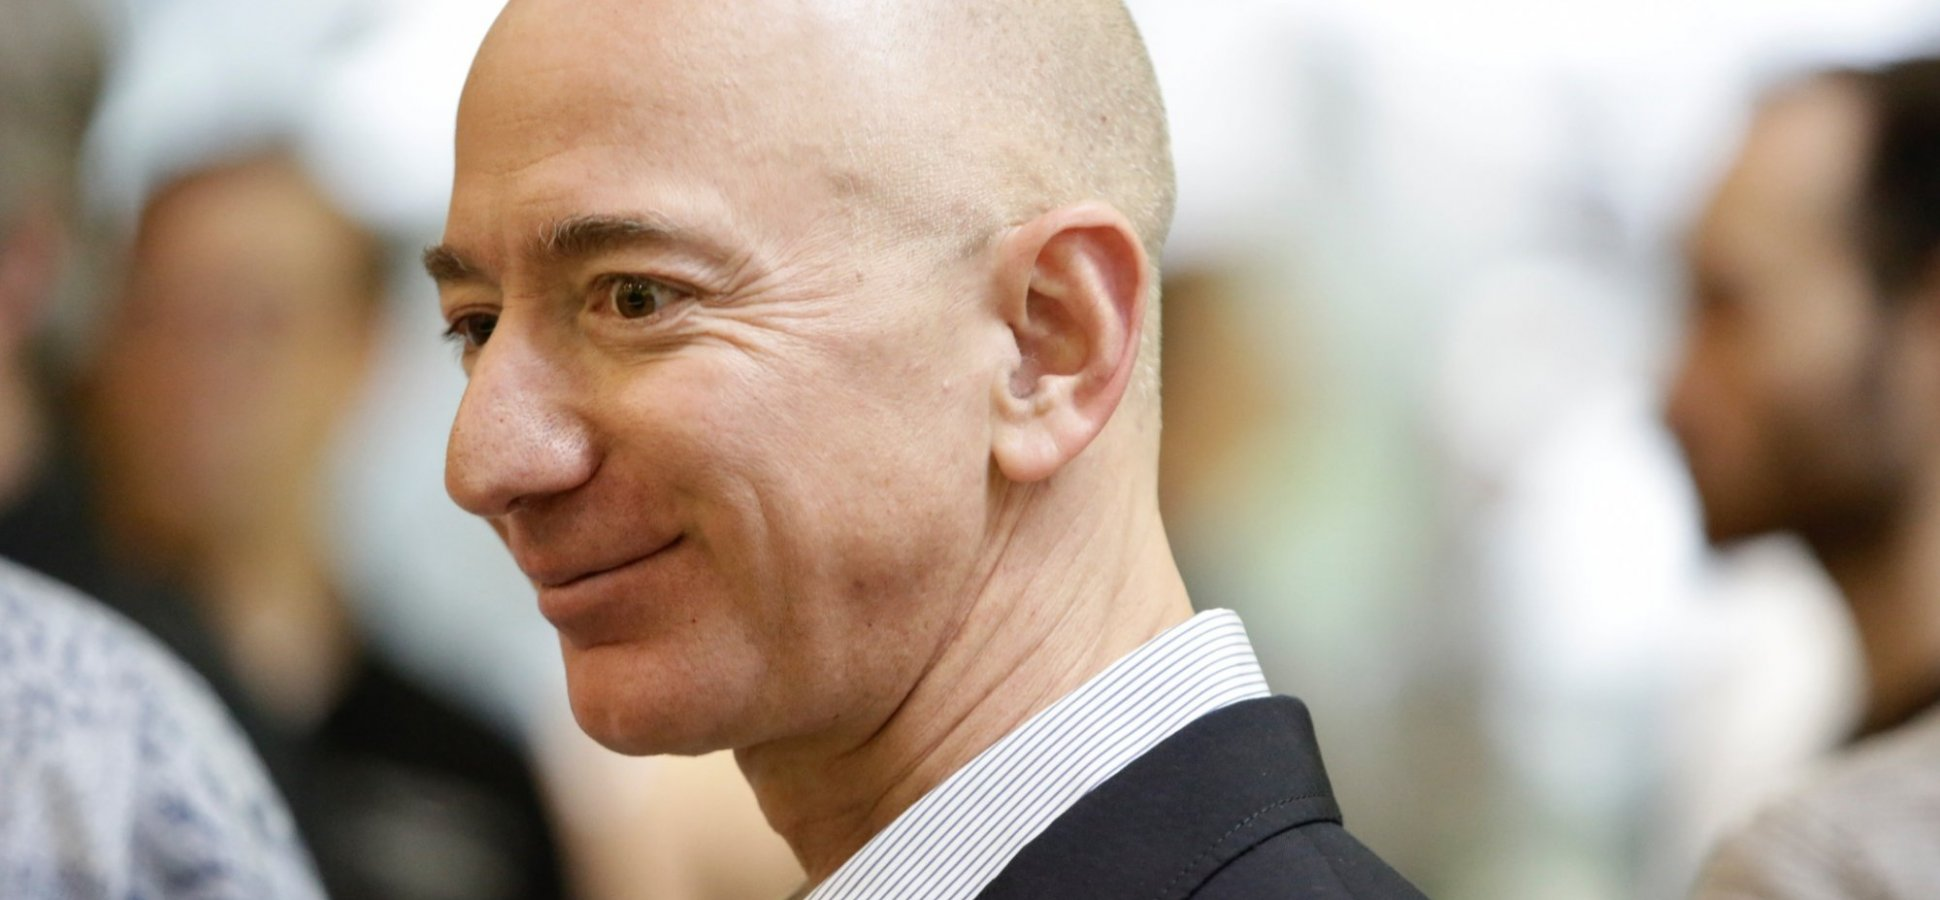 It Took Jeff Bezos Exactly 5 Words To Teach A Major Lesson In